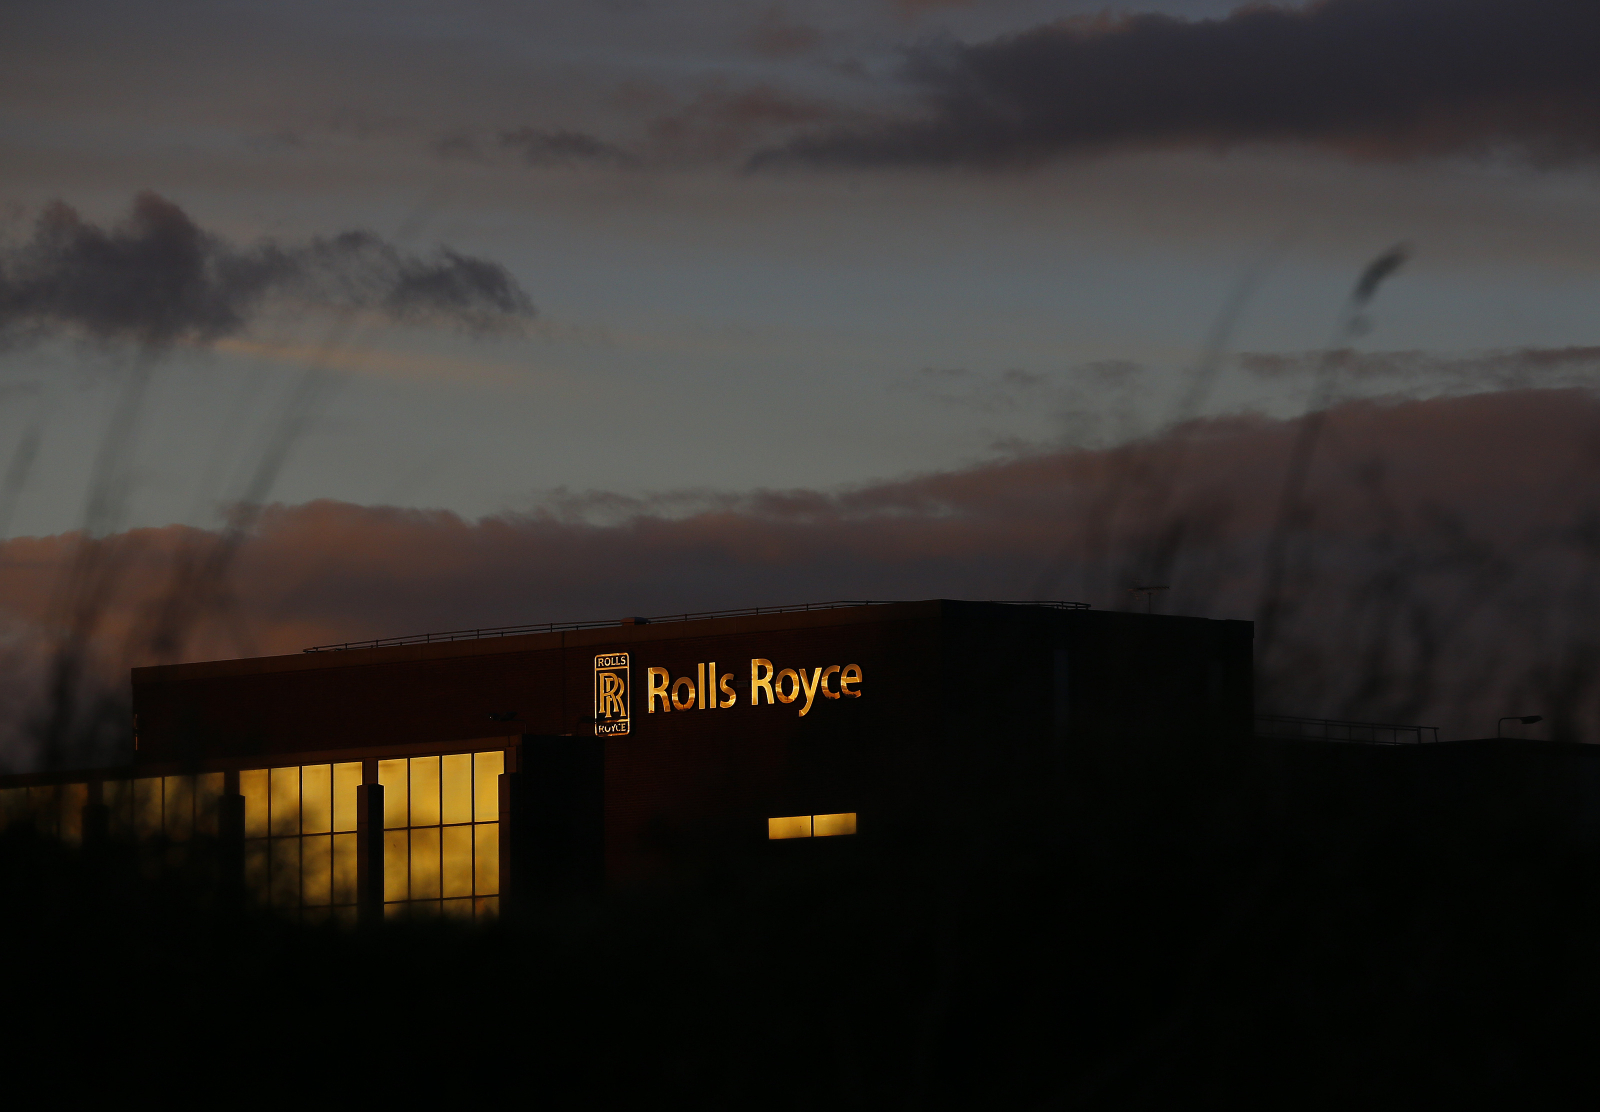 Rolls-Royce in Derby